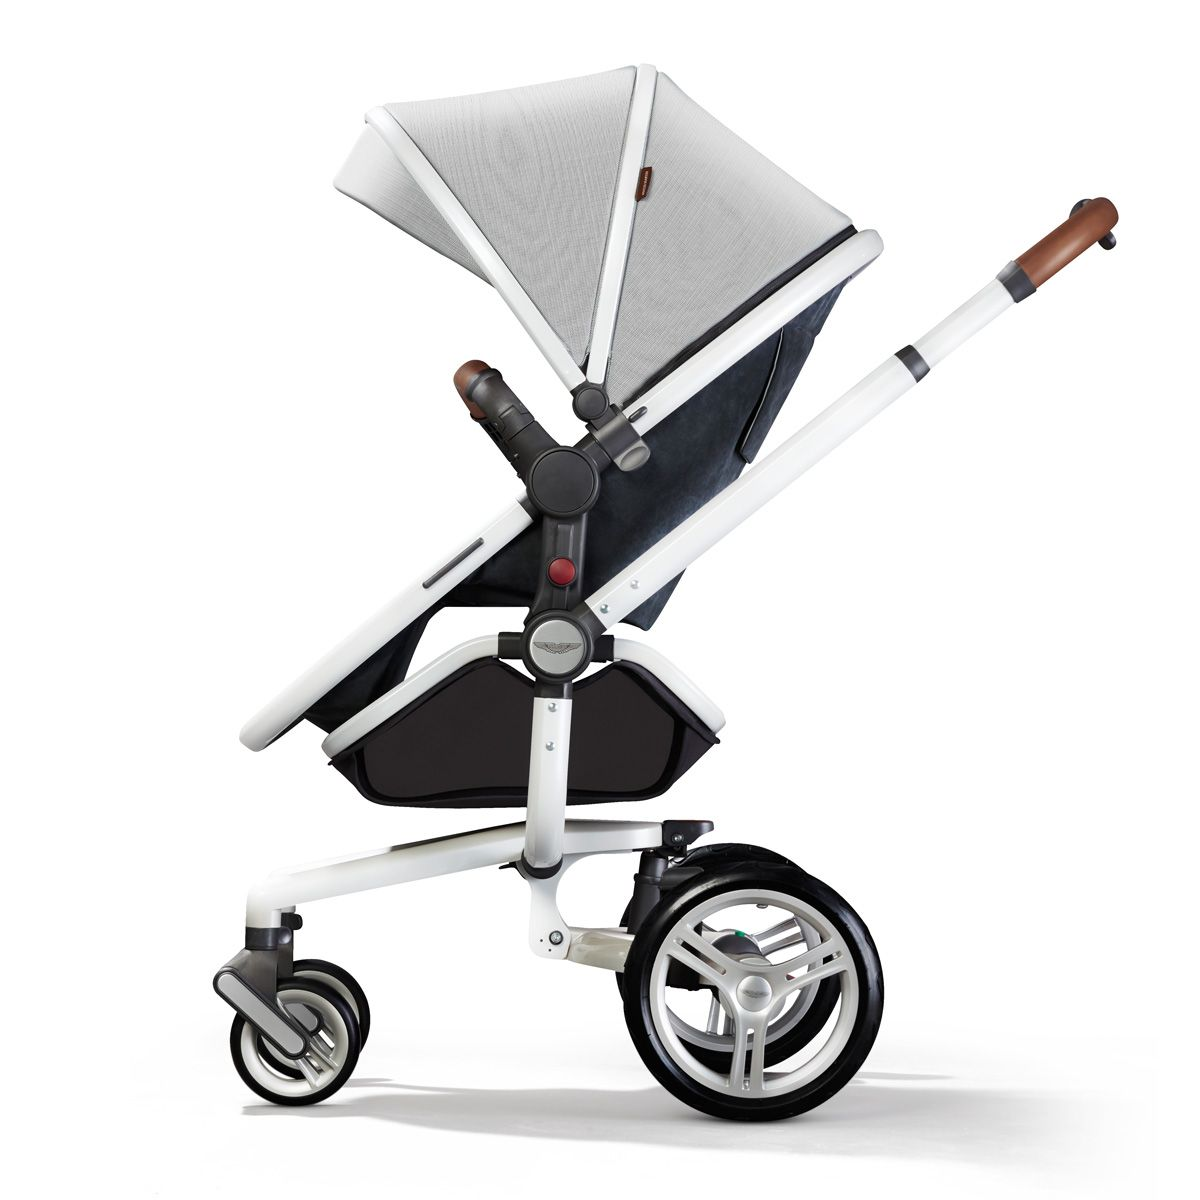 surf aston martin edition in pushchair mode | accessories for baba